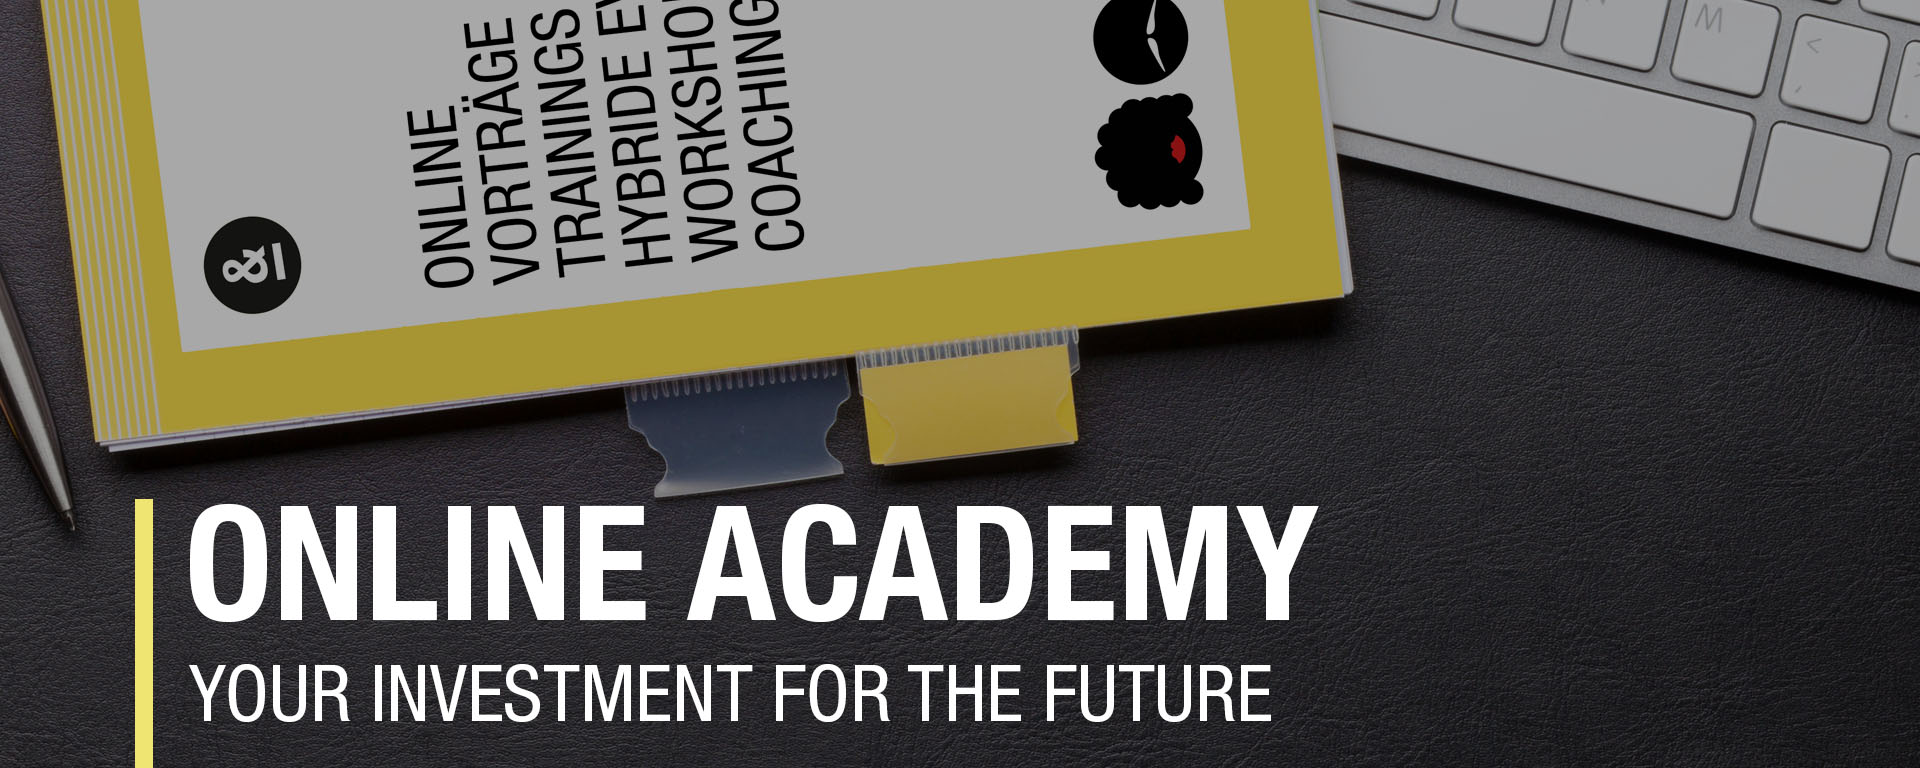 Online academy, digital academy, coaching education online, e learning